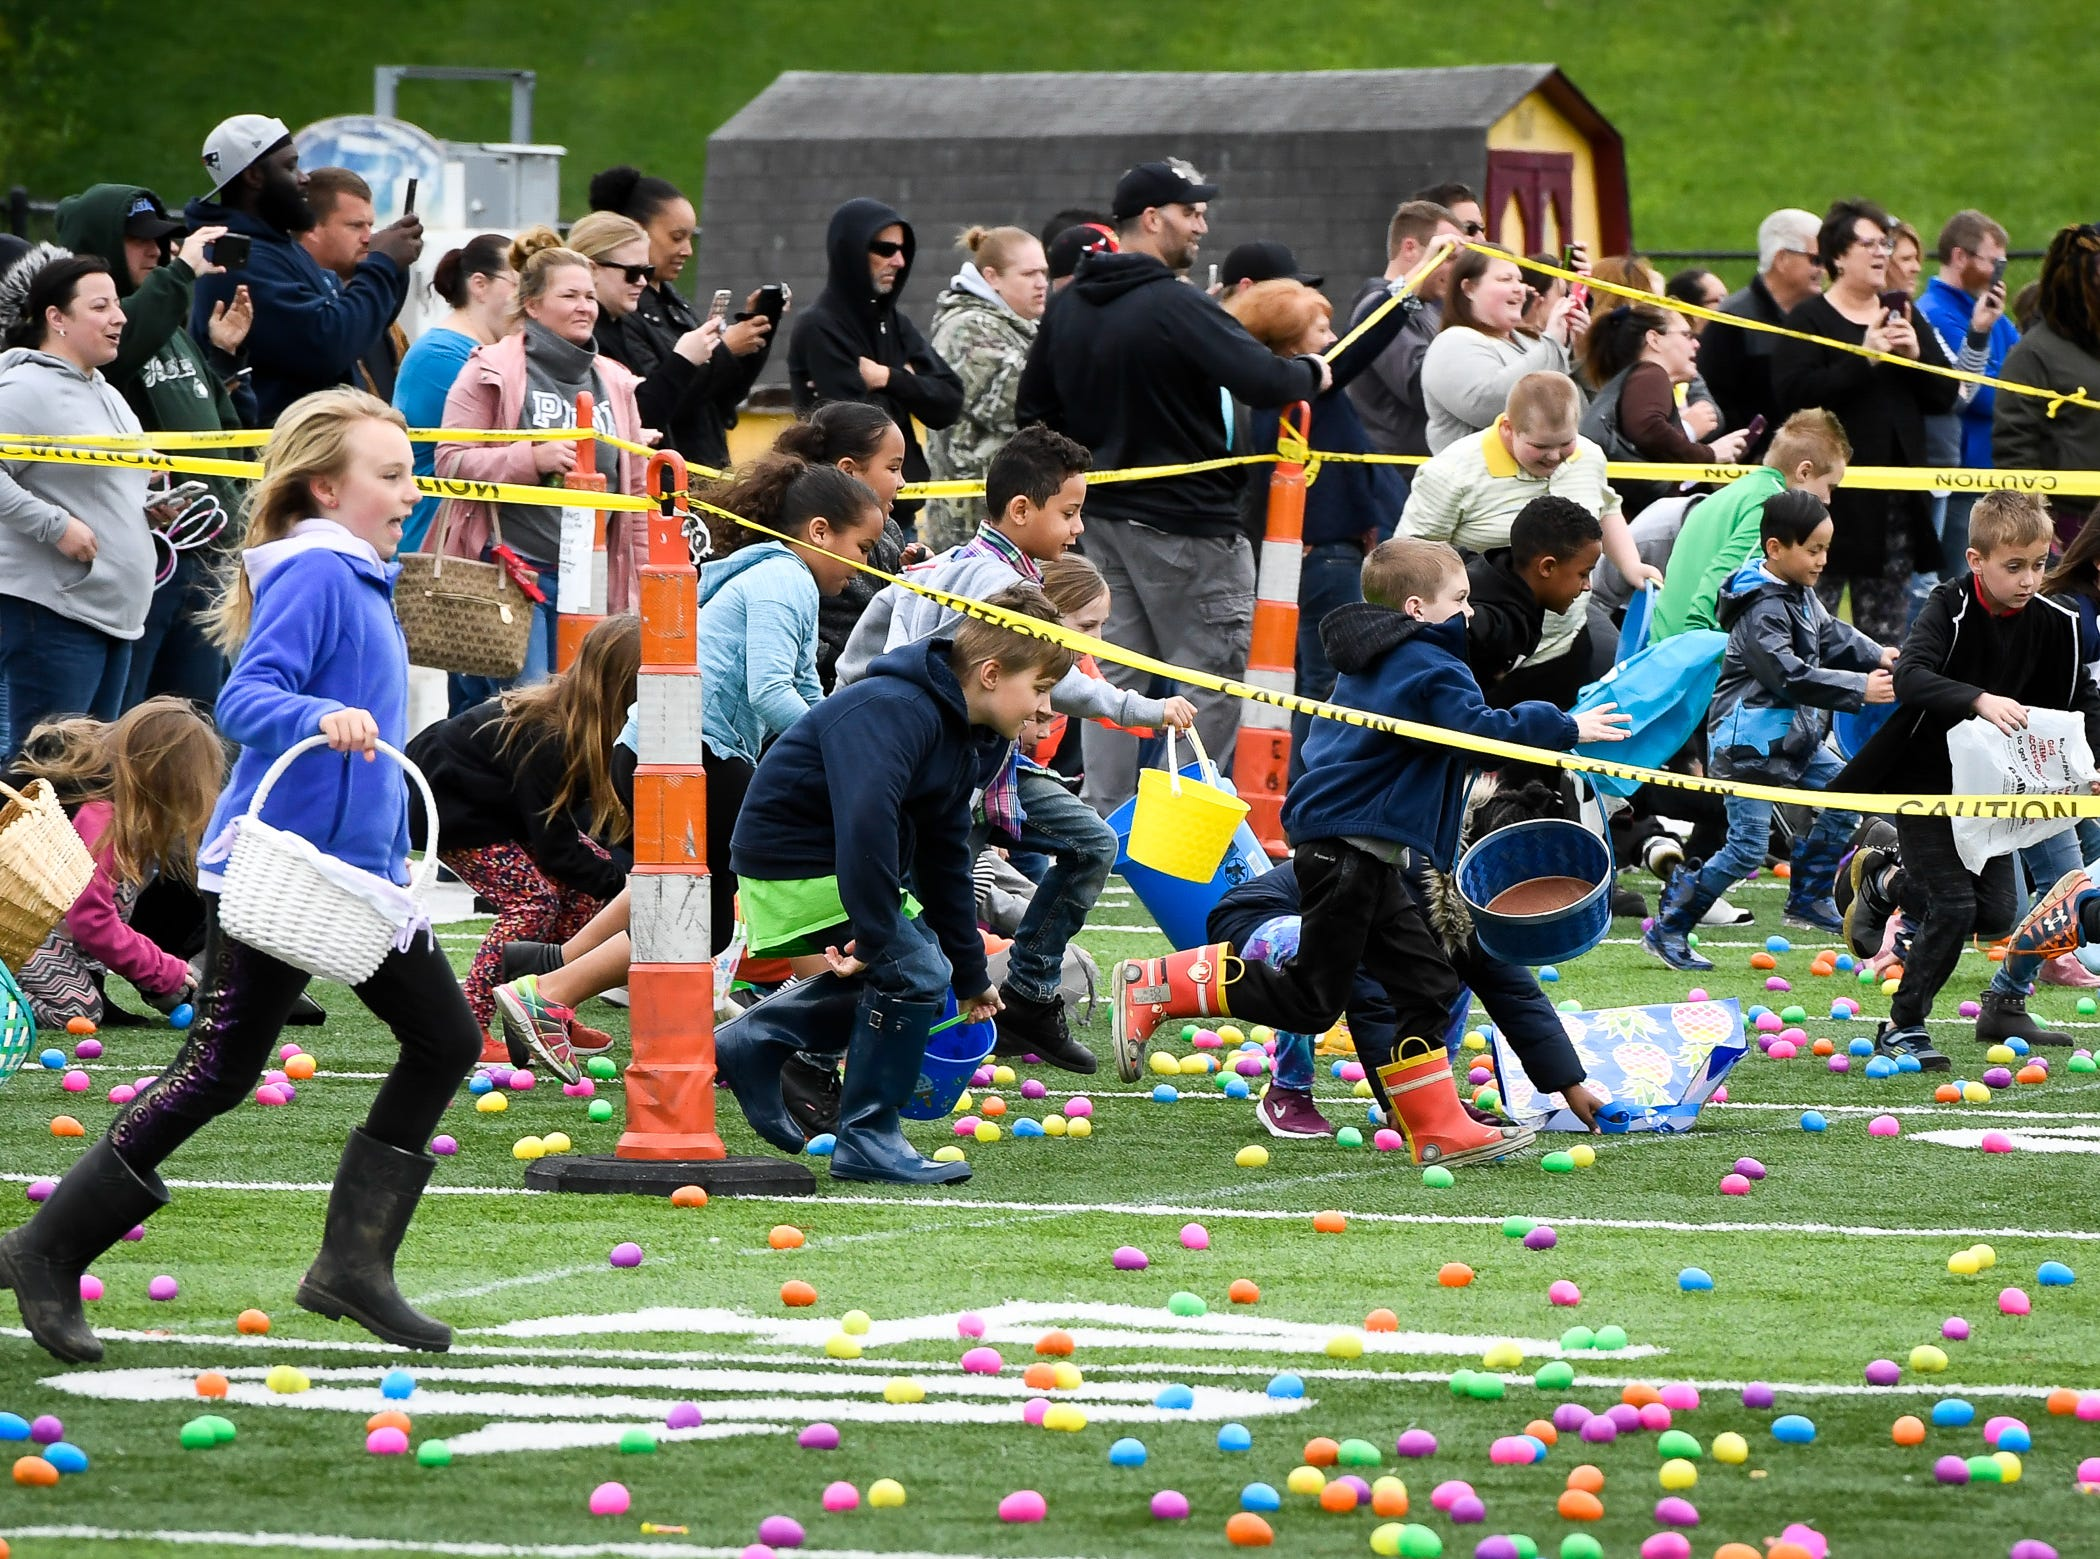 Kids rush to collect eggs at the 72nd annual West Side Nut Club Easter Egg Hunt Saturday, April 20, 2019.